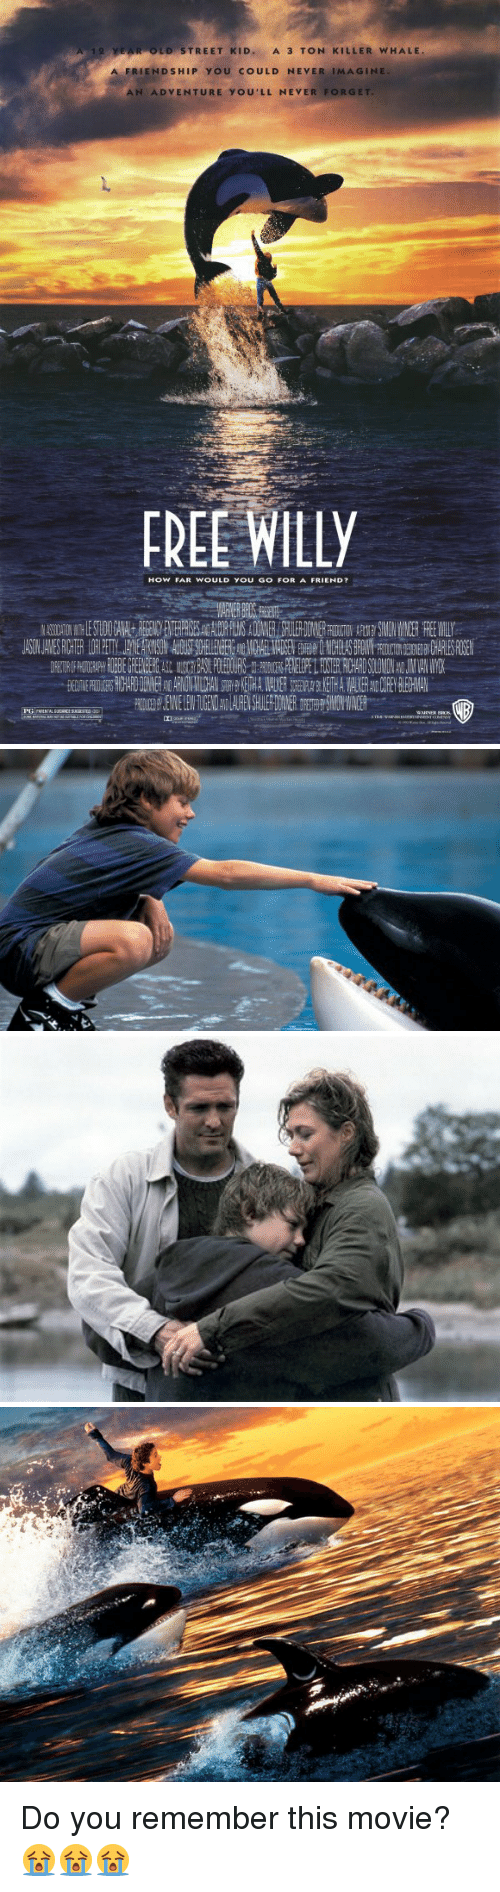 killer whale: A 12 LD STREET KID  A 3 TON KILLER WHALE.  A FRIENDSHIP YOU COULD NEVER IMAGINE  AN ADVENTURE YOU'LL NEVER FORGET  FREE YOU GO FOR A FRIEND?  WILLY   ,ey Do you remember this movie? 😭😭😭